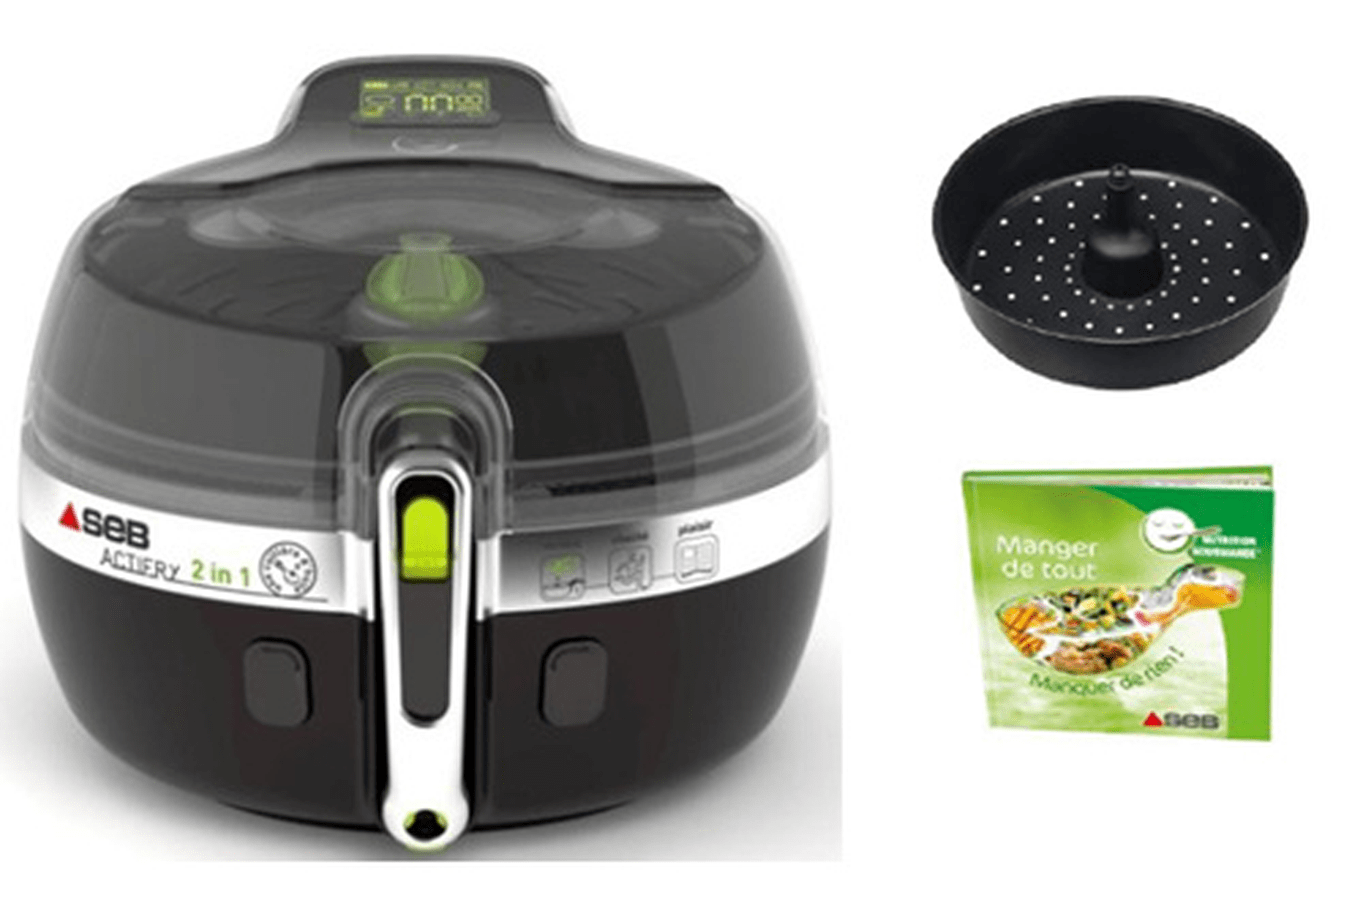 Nav Achat Petit Electromenager Cuisson Quotidienne Friteuse Seb Zv Actifry L